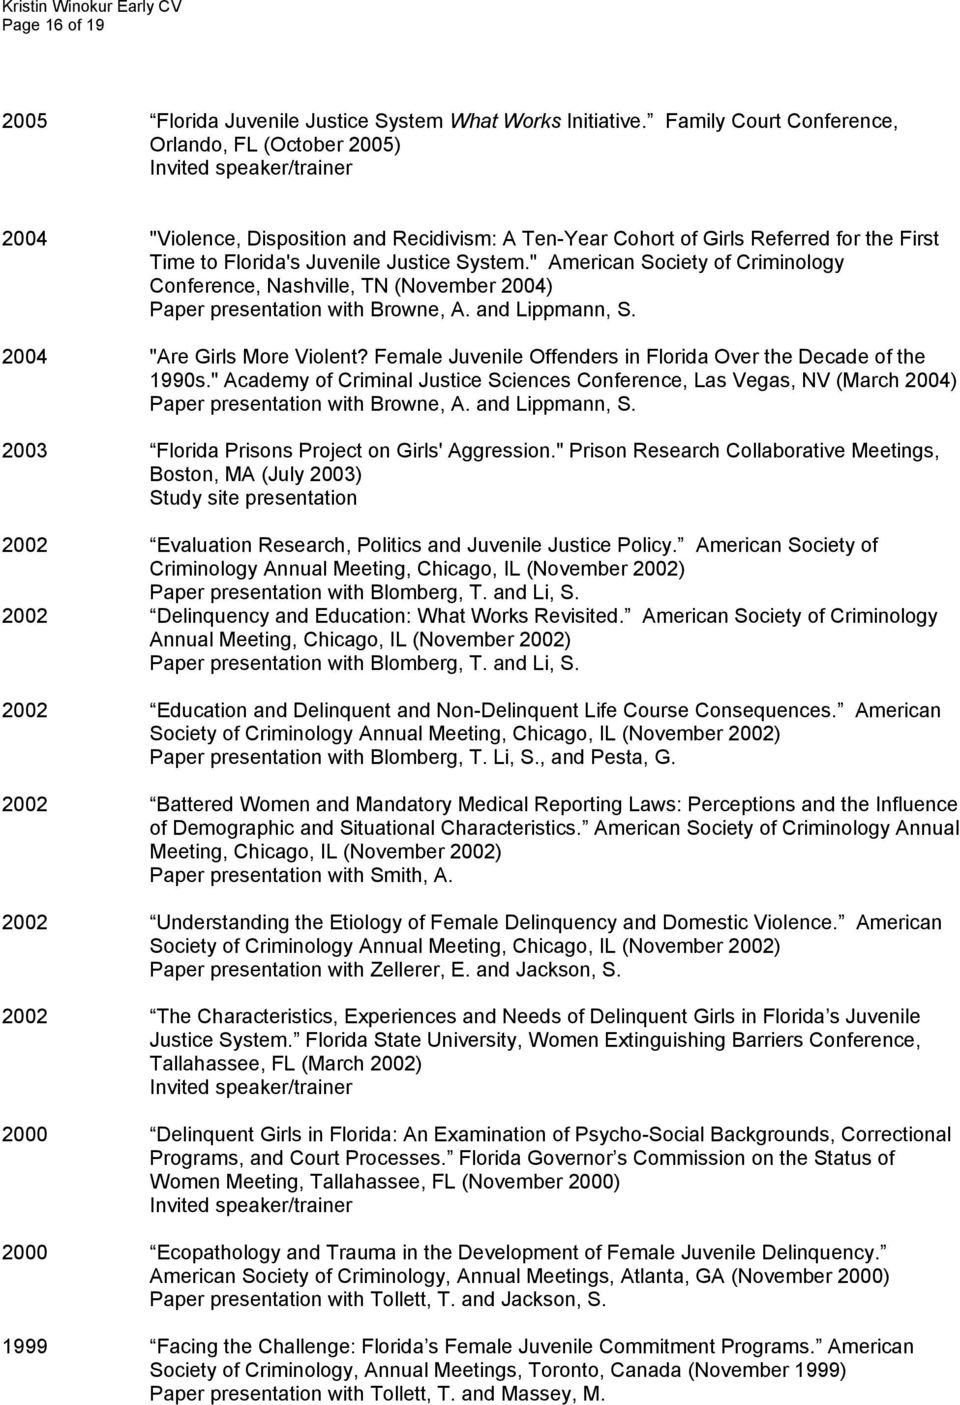 """ American Society of Criminology Conference, Nashville, TN (November 2004) Paper presentation with Browne, A. and Lippmann, S. 2004 ""Are Girls More Violent?"